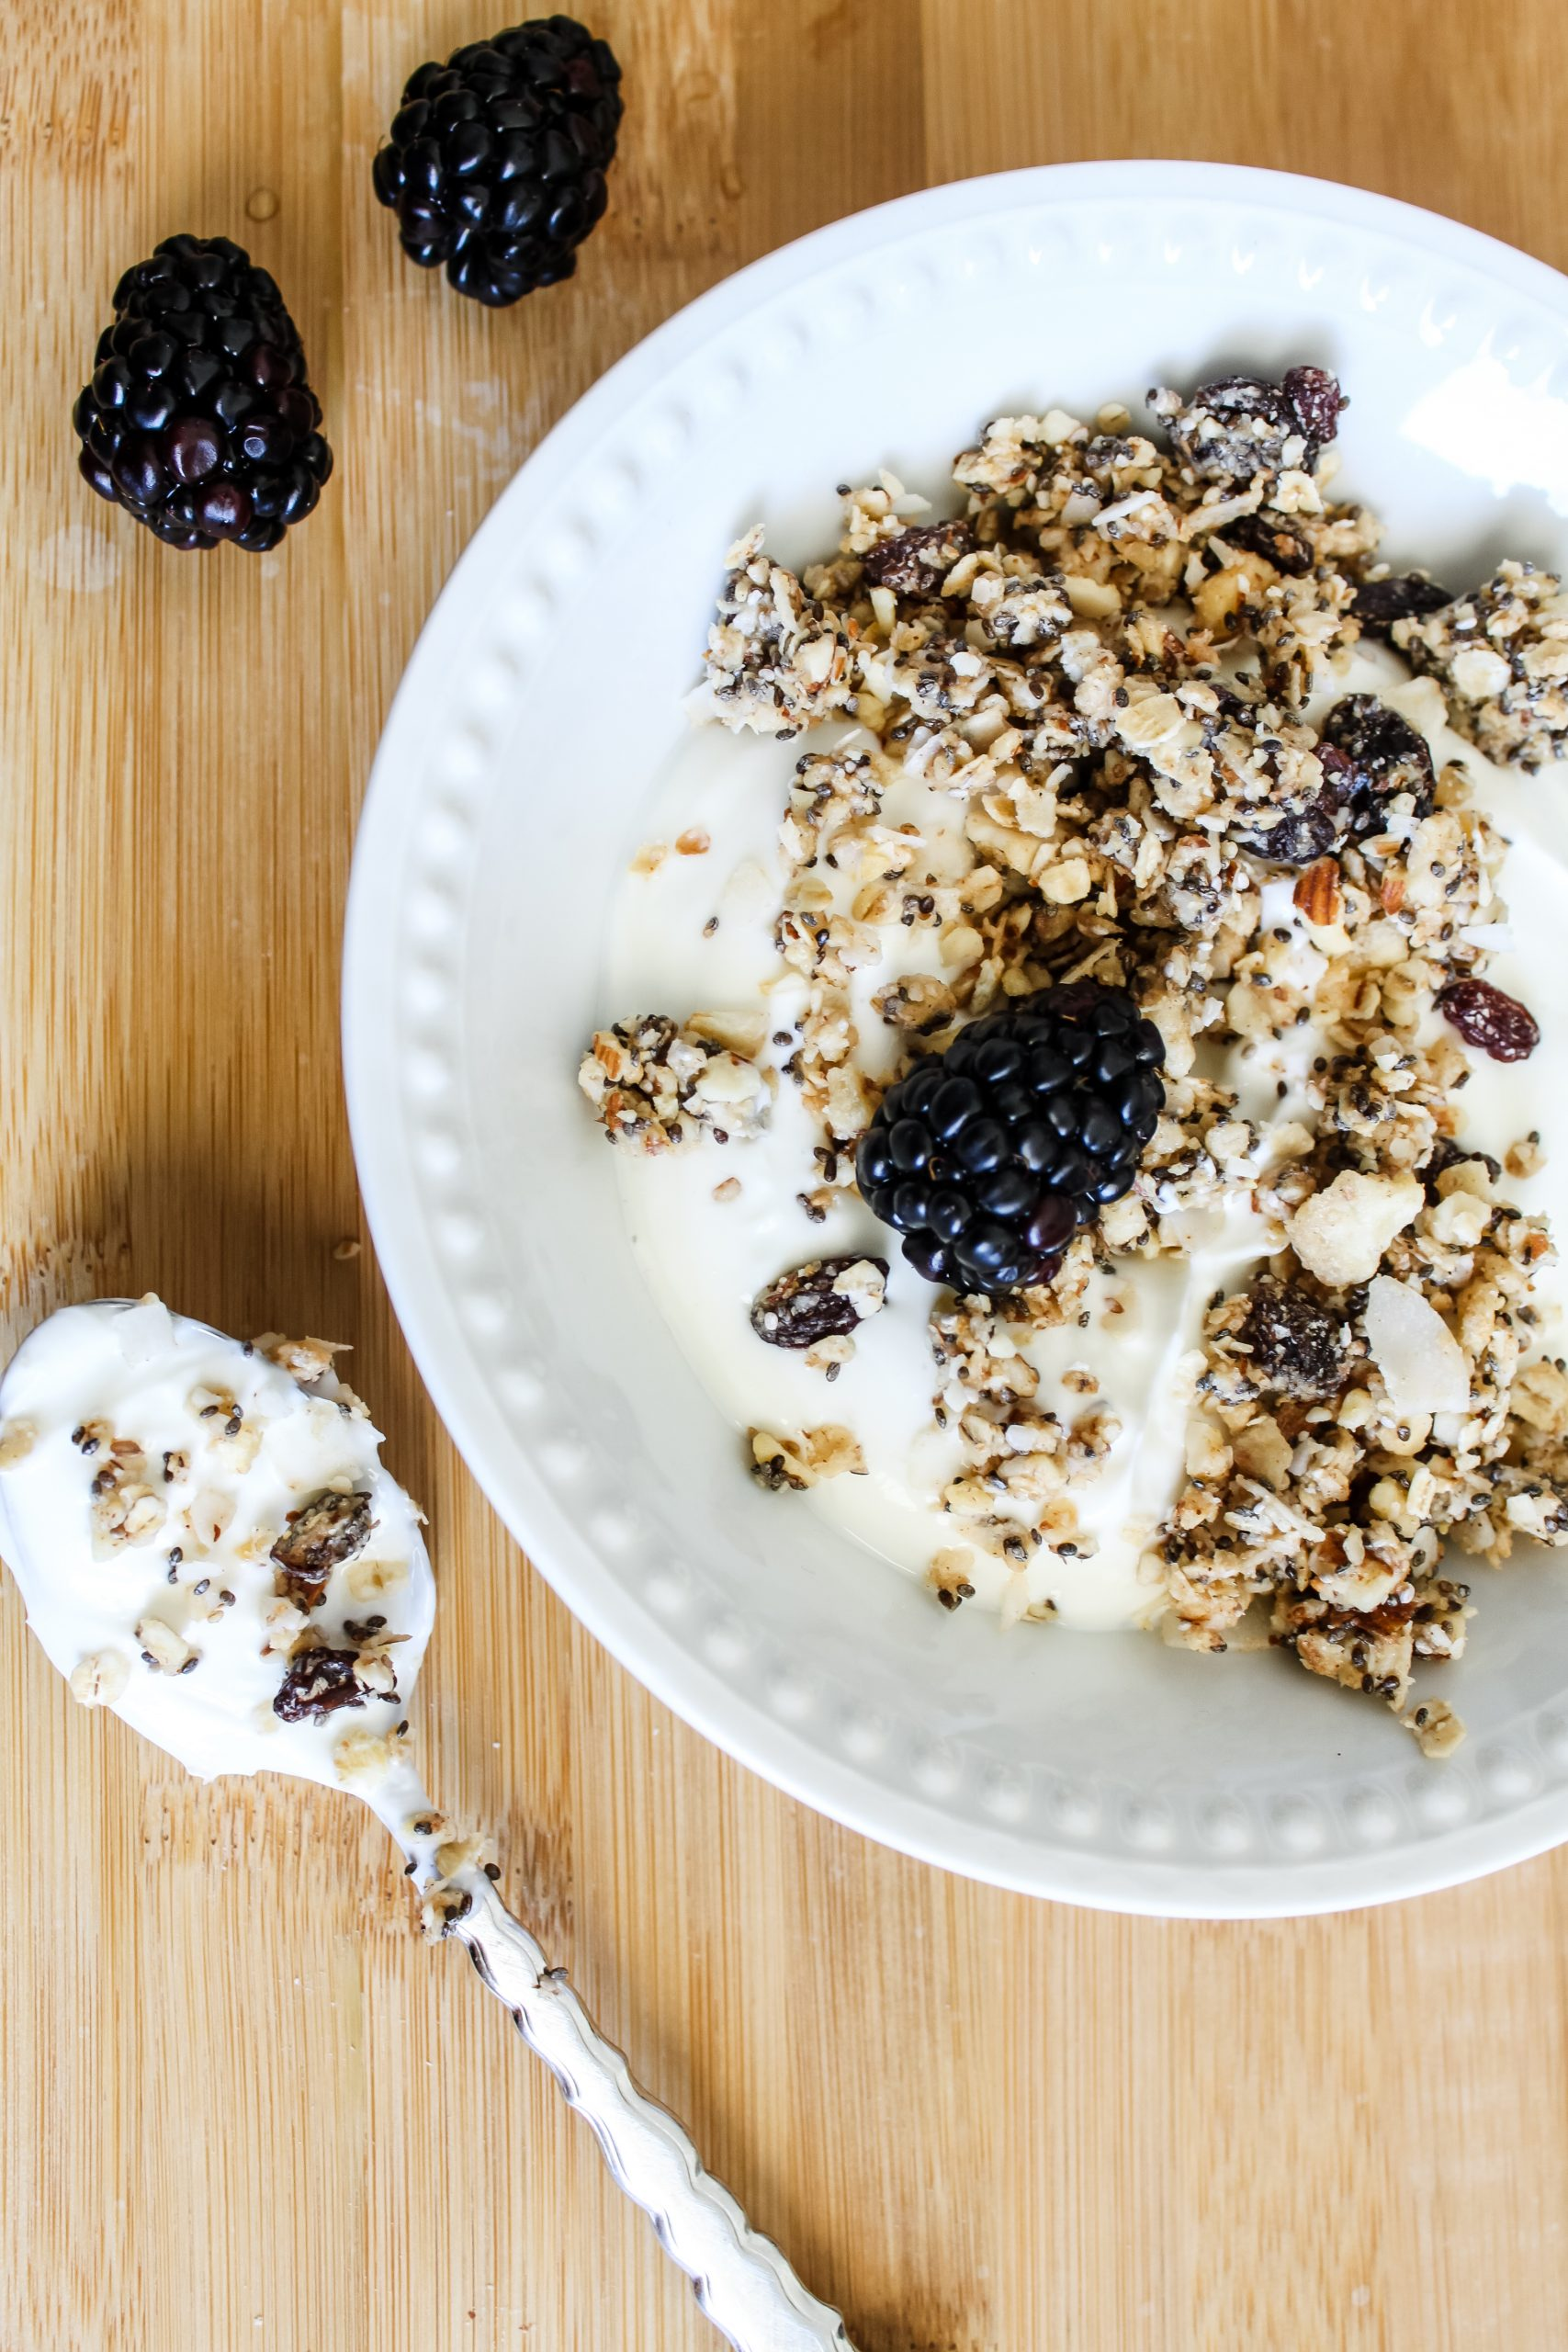 Miss K's Raw Granola | gypsy magpie